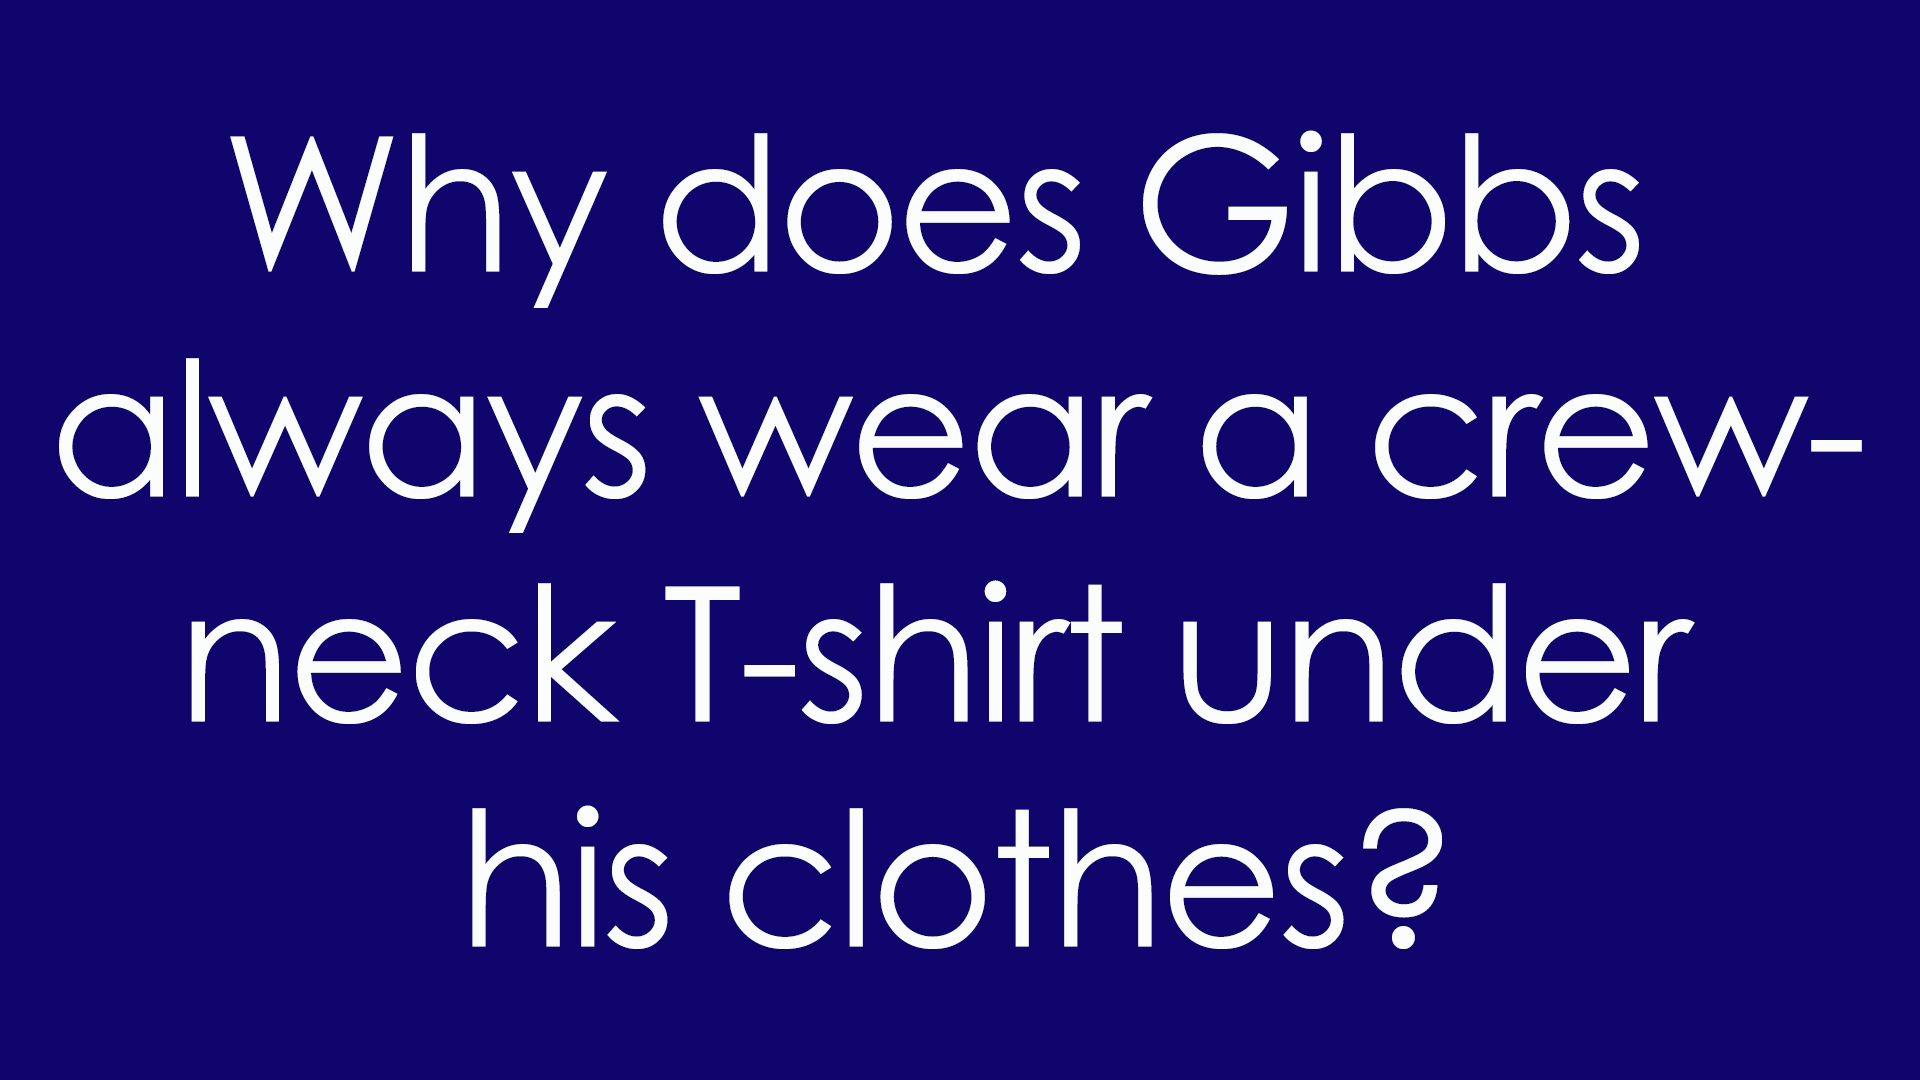 6. Why does Gibbs always wear a crew-neck T-shirt under his clothes?